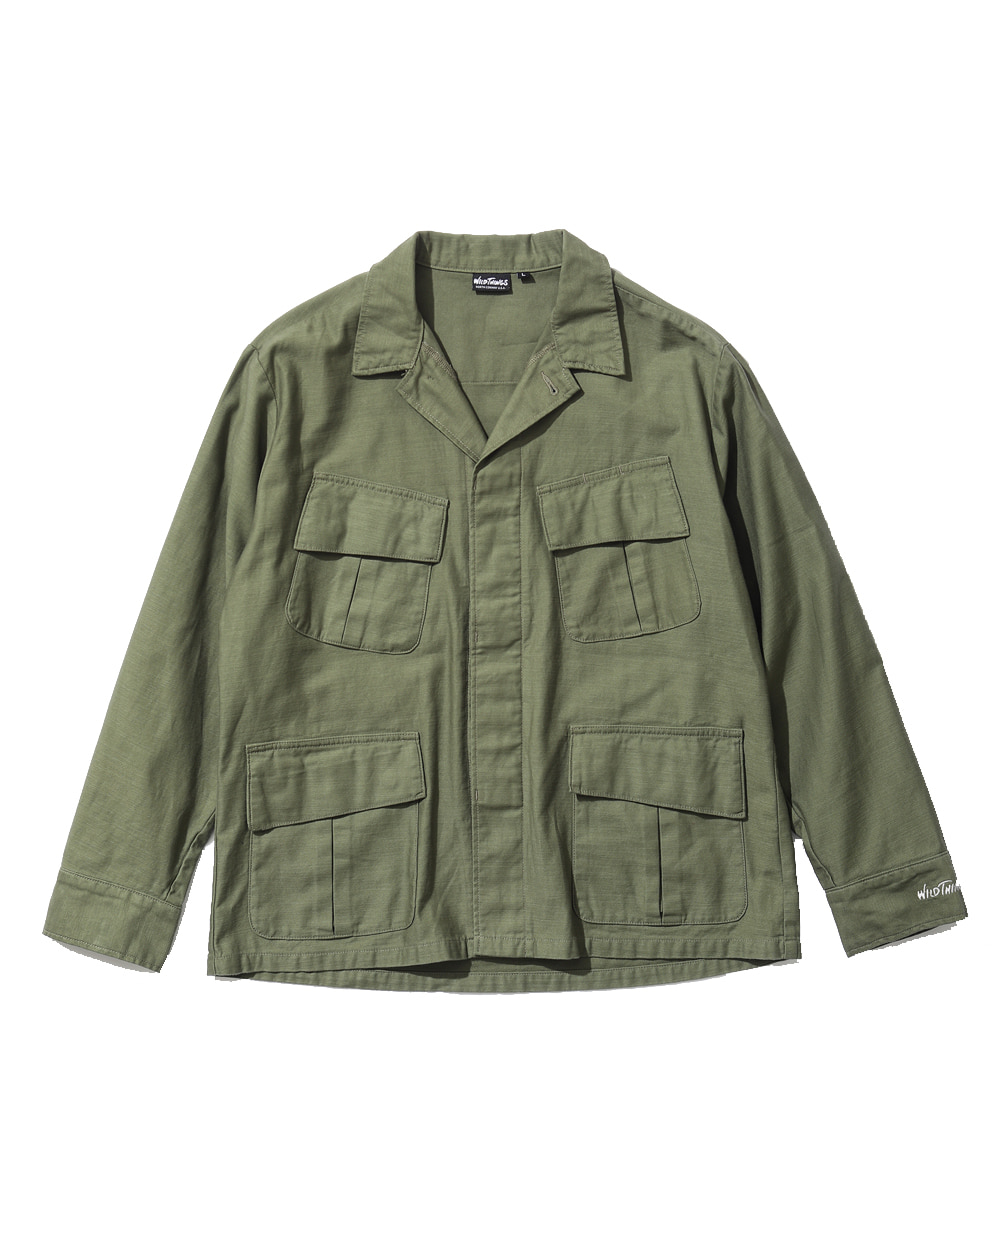 와일드띵스 BACKSATIN FIELD JACKET (Olive)